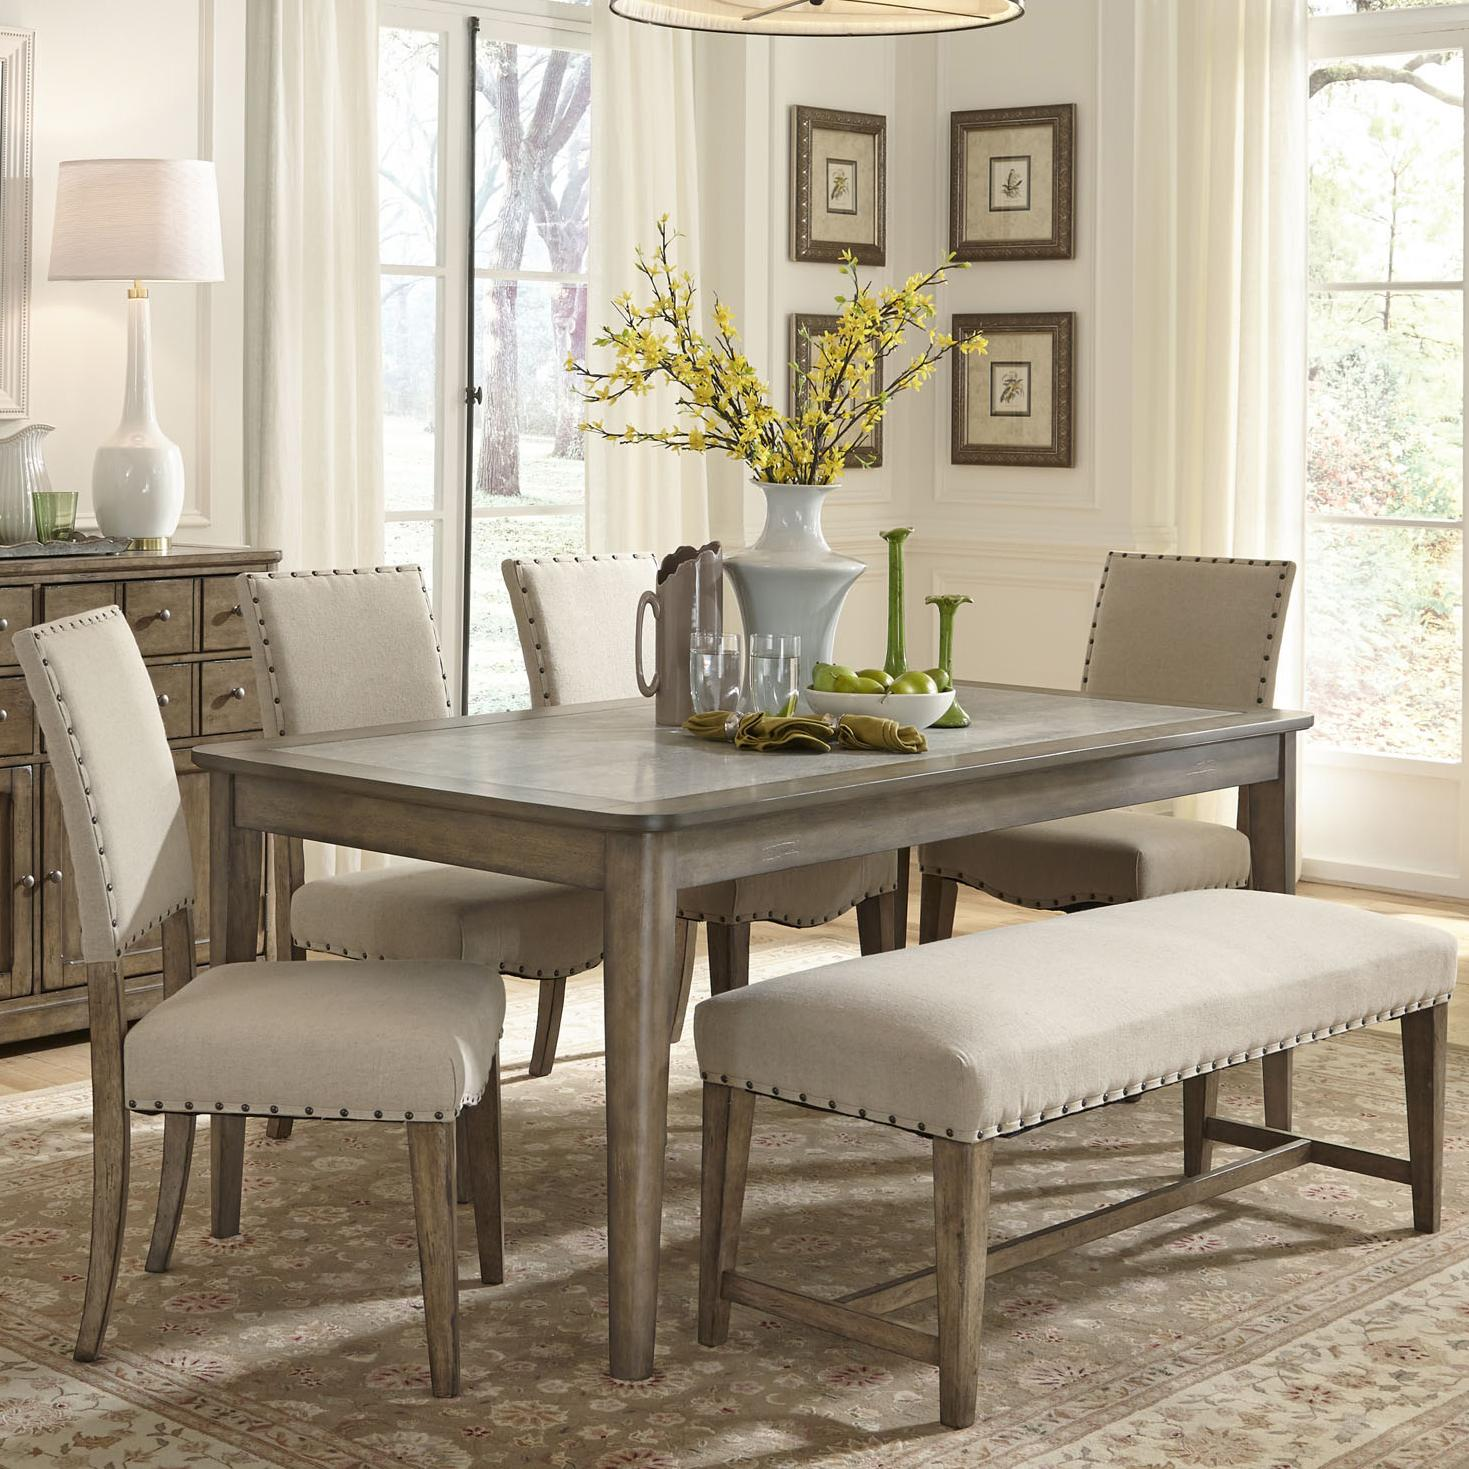 rustic dining table and chairs plastic covers for liberty furniture weatherford casual 6 piece